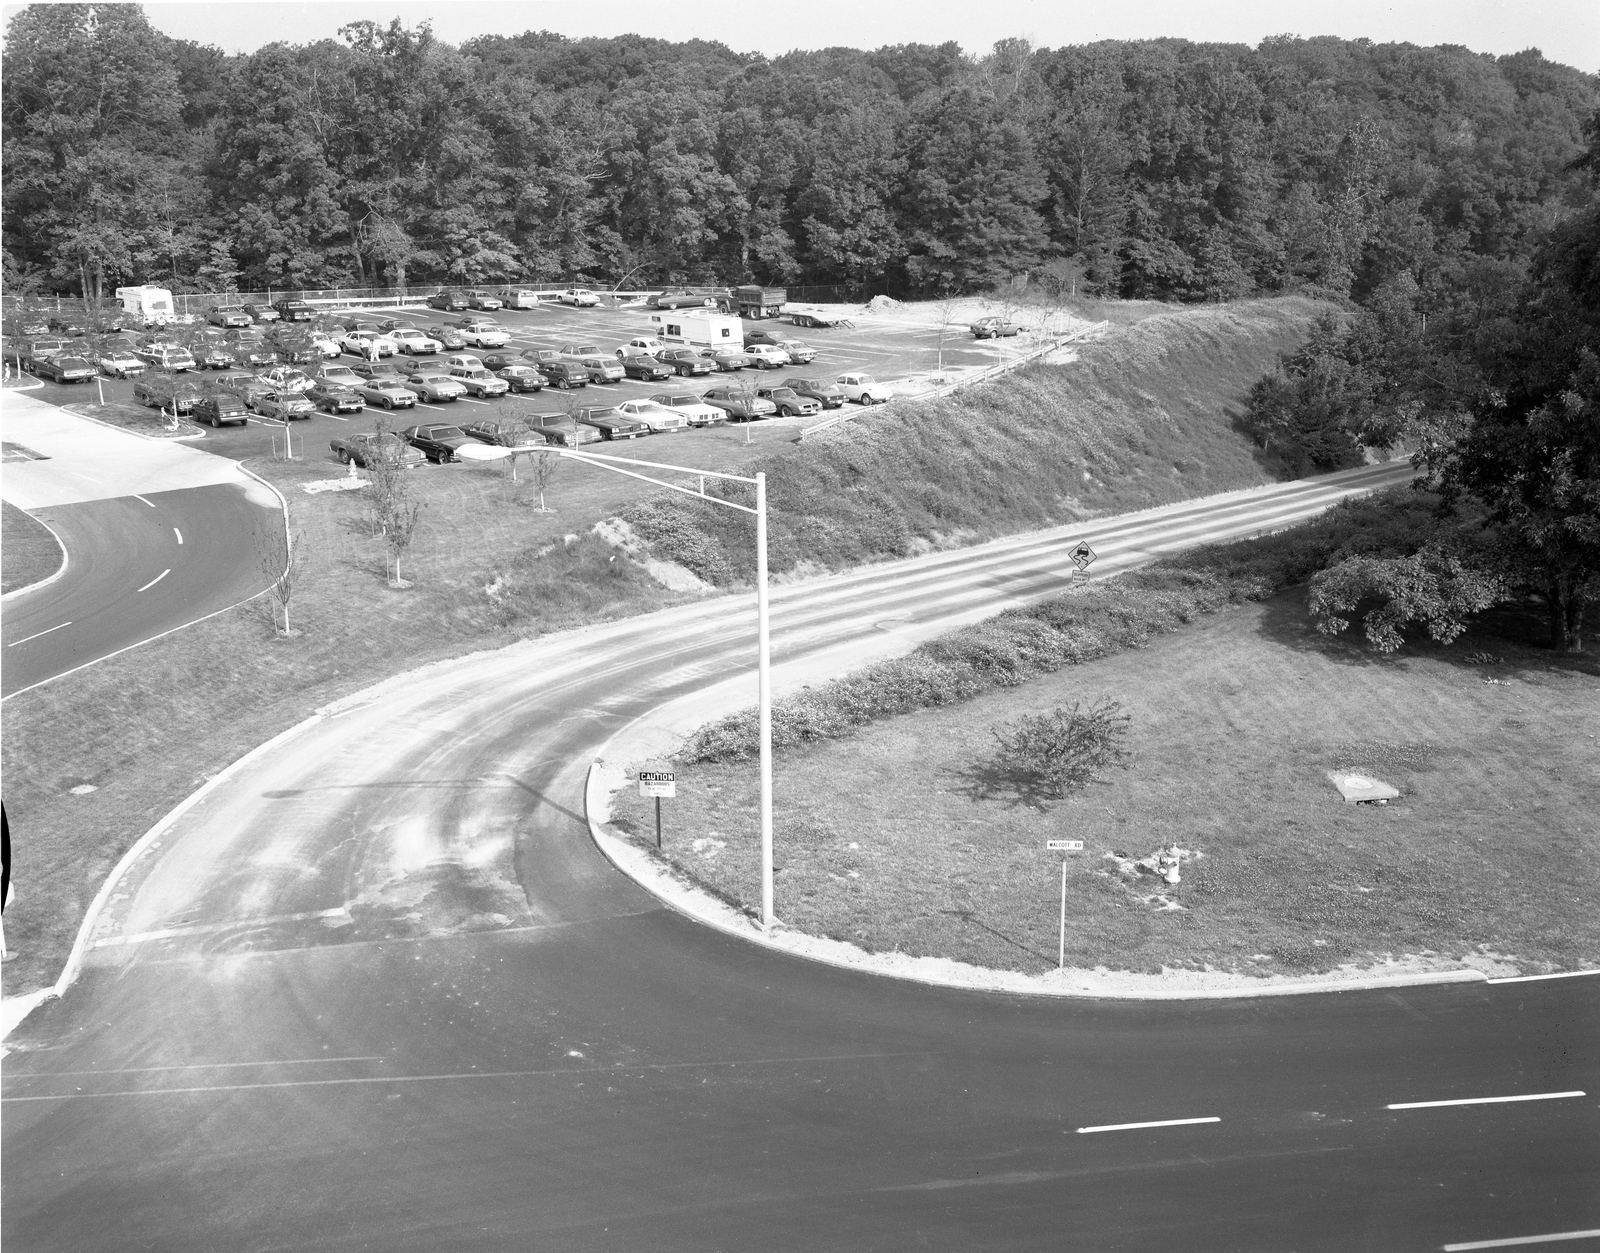 WALCOTT ROAD FROM WIGGINS FUEL STORAGE TANK FARMS TO THE SOUTH GATE HOUSE BUILDING